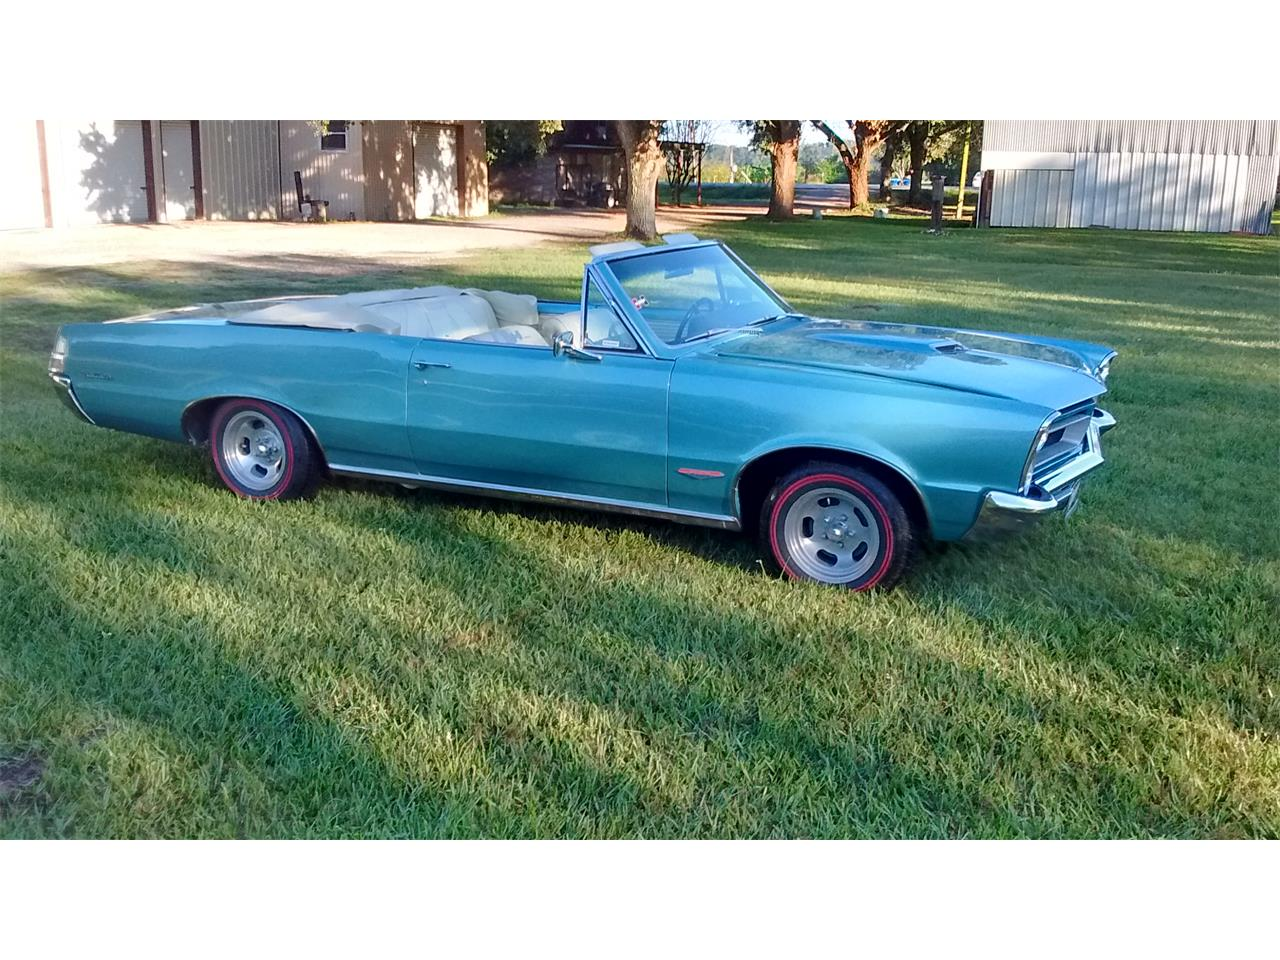 hight resolution of wiring diagram also 1965 pontiac gto convertible for sale further 1965 pontiac gto for sale classiccars